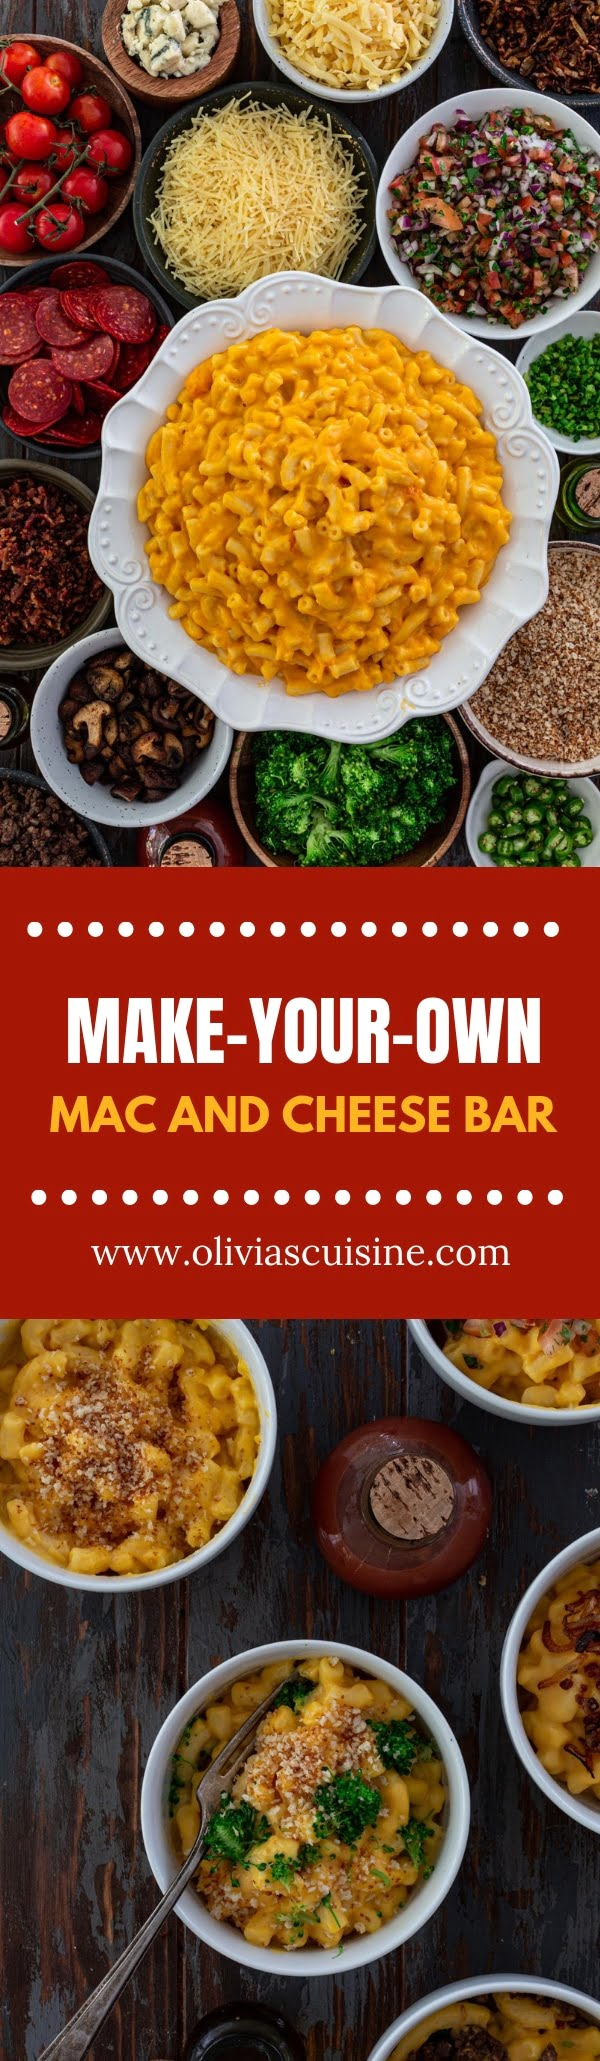 Make-Your-Own Mac and Cheese Bar | www.oliviascuisine.com | Let your guests have some fun by setting up a Mac and Cheese Bar at your next party! A big bowl of creamy Mac & Cheese and some delicious toppings and mix-ins are all you need for the ultimate cheesy celebration. (Recipes and food photography by @oliviascuisine.)